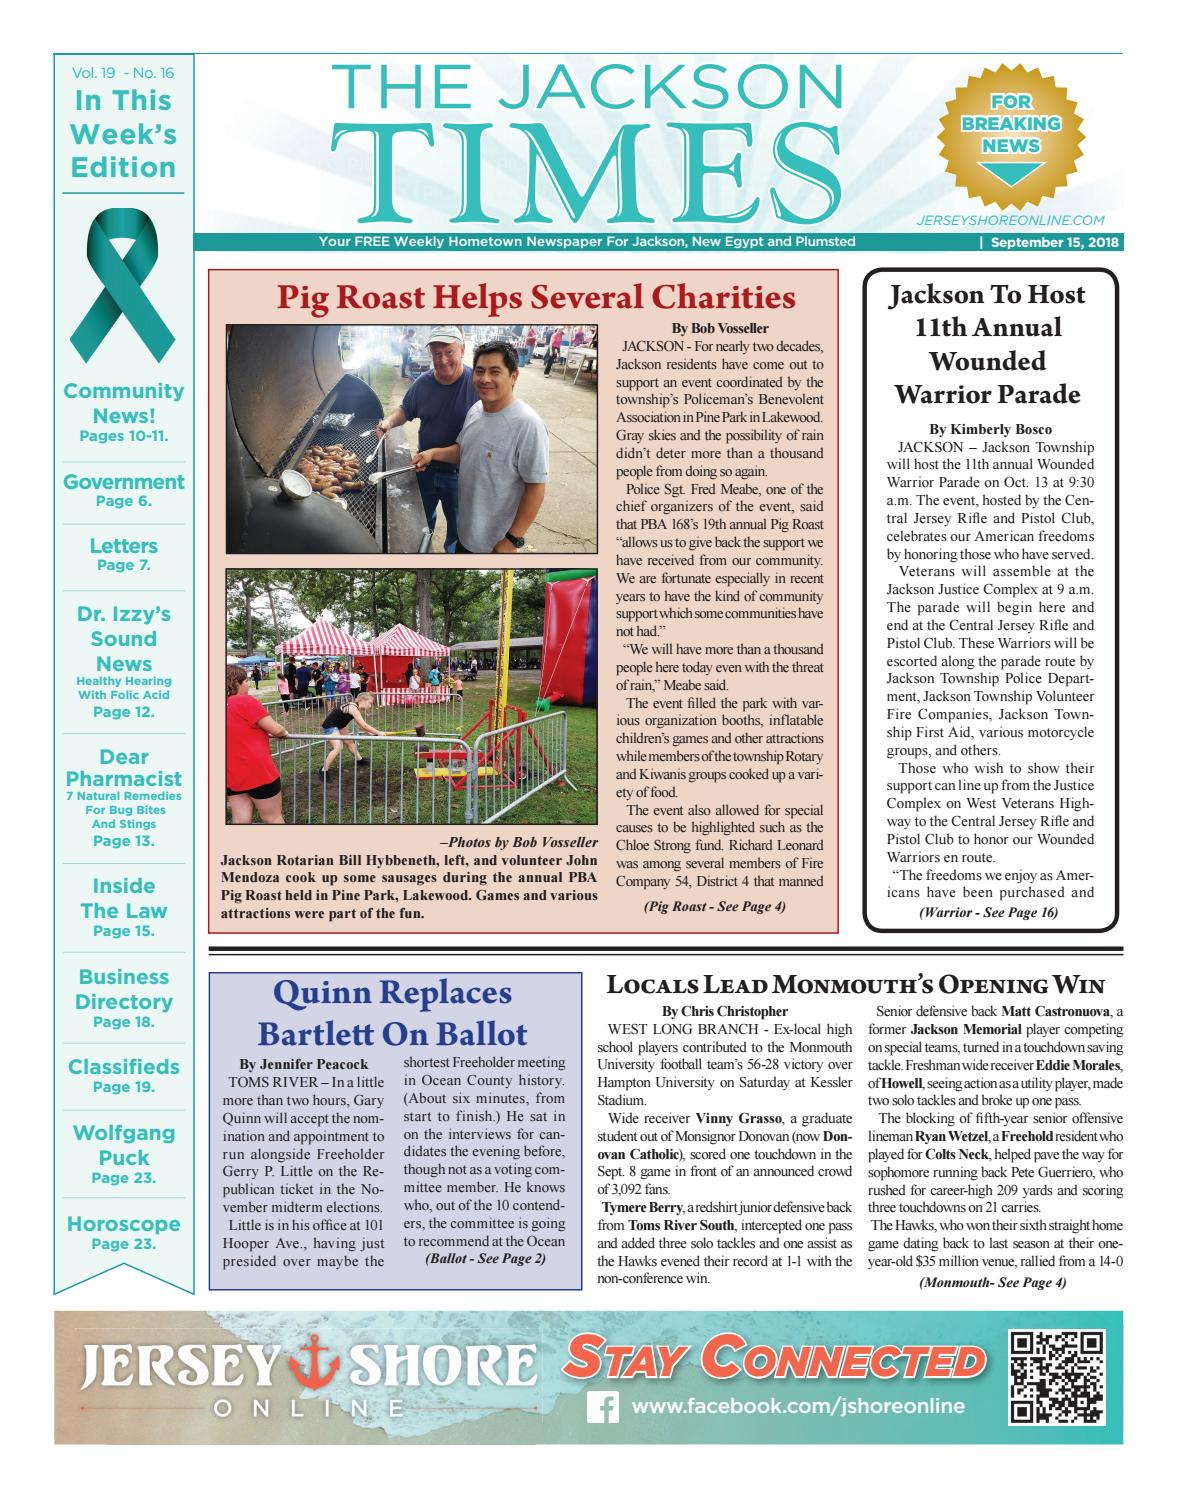 2018-09-15 - The Jackson Times by Micromedia Publications